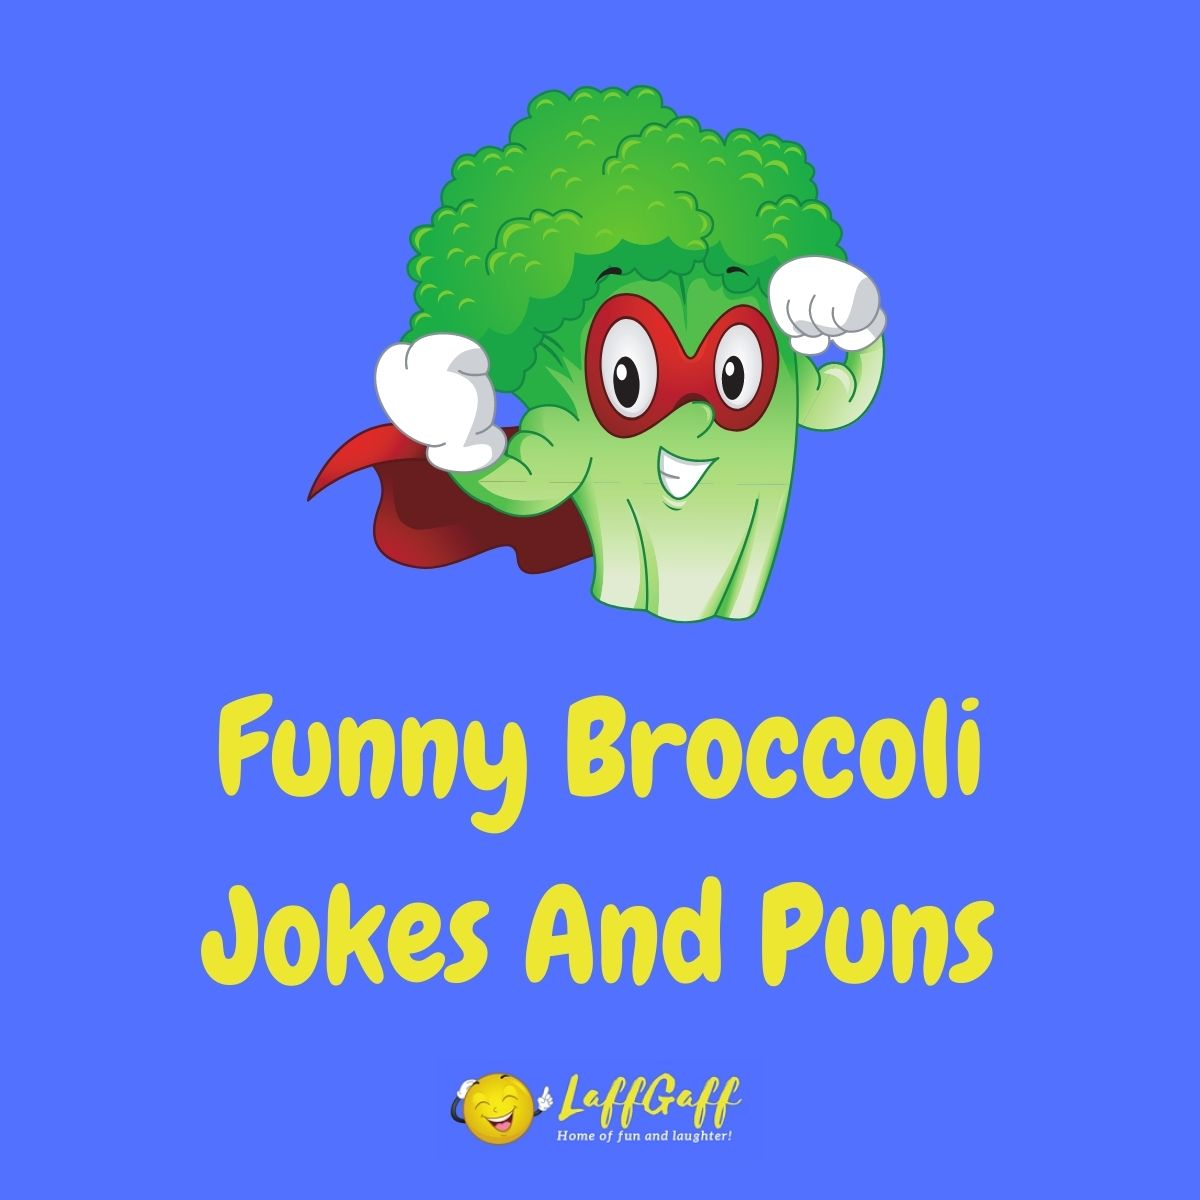 Featured image for a page of funny broccoli jokes and puns.